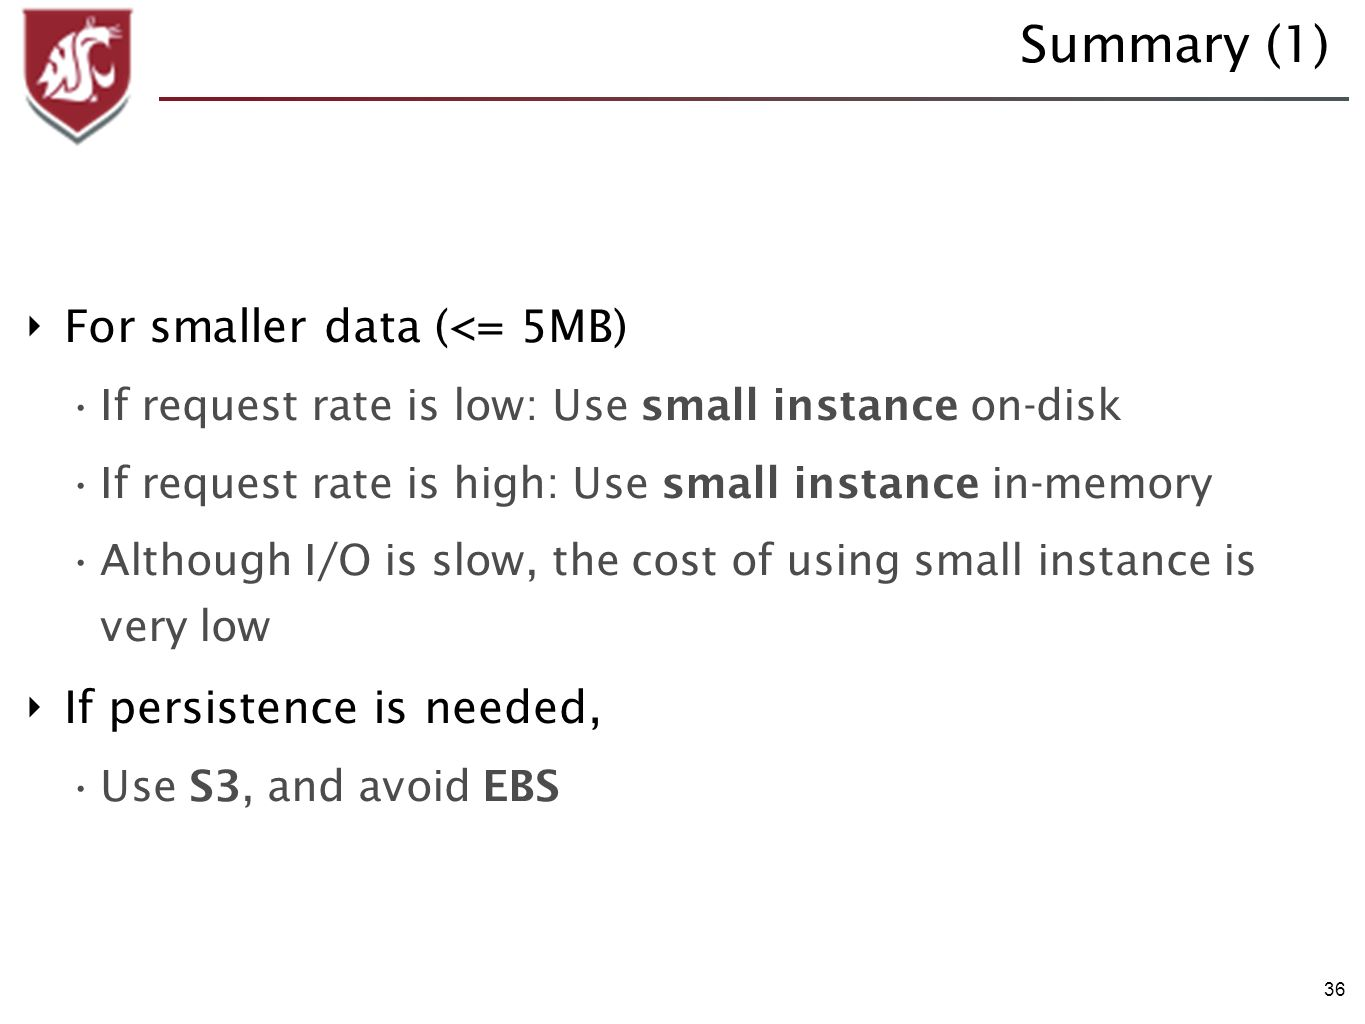 36 Summary (1) For smaller data (<= 5MB) If request rate is low: Use small instance on-disk If request rate is high: Use small instance in-memory Although I/O is slow, the cost of using small instance is very low If persistence is needed, Use S3, and avoid EBS